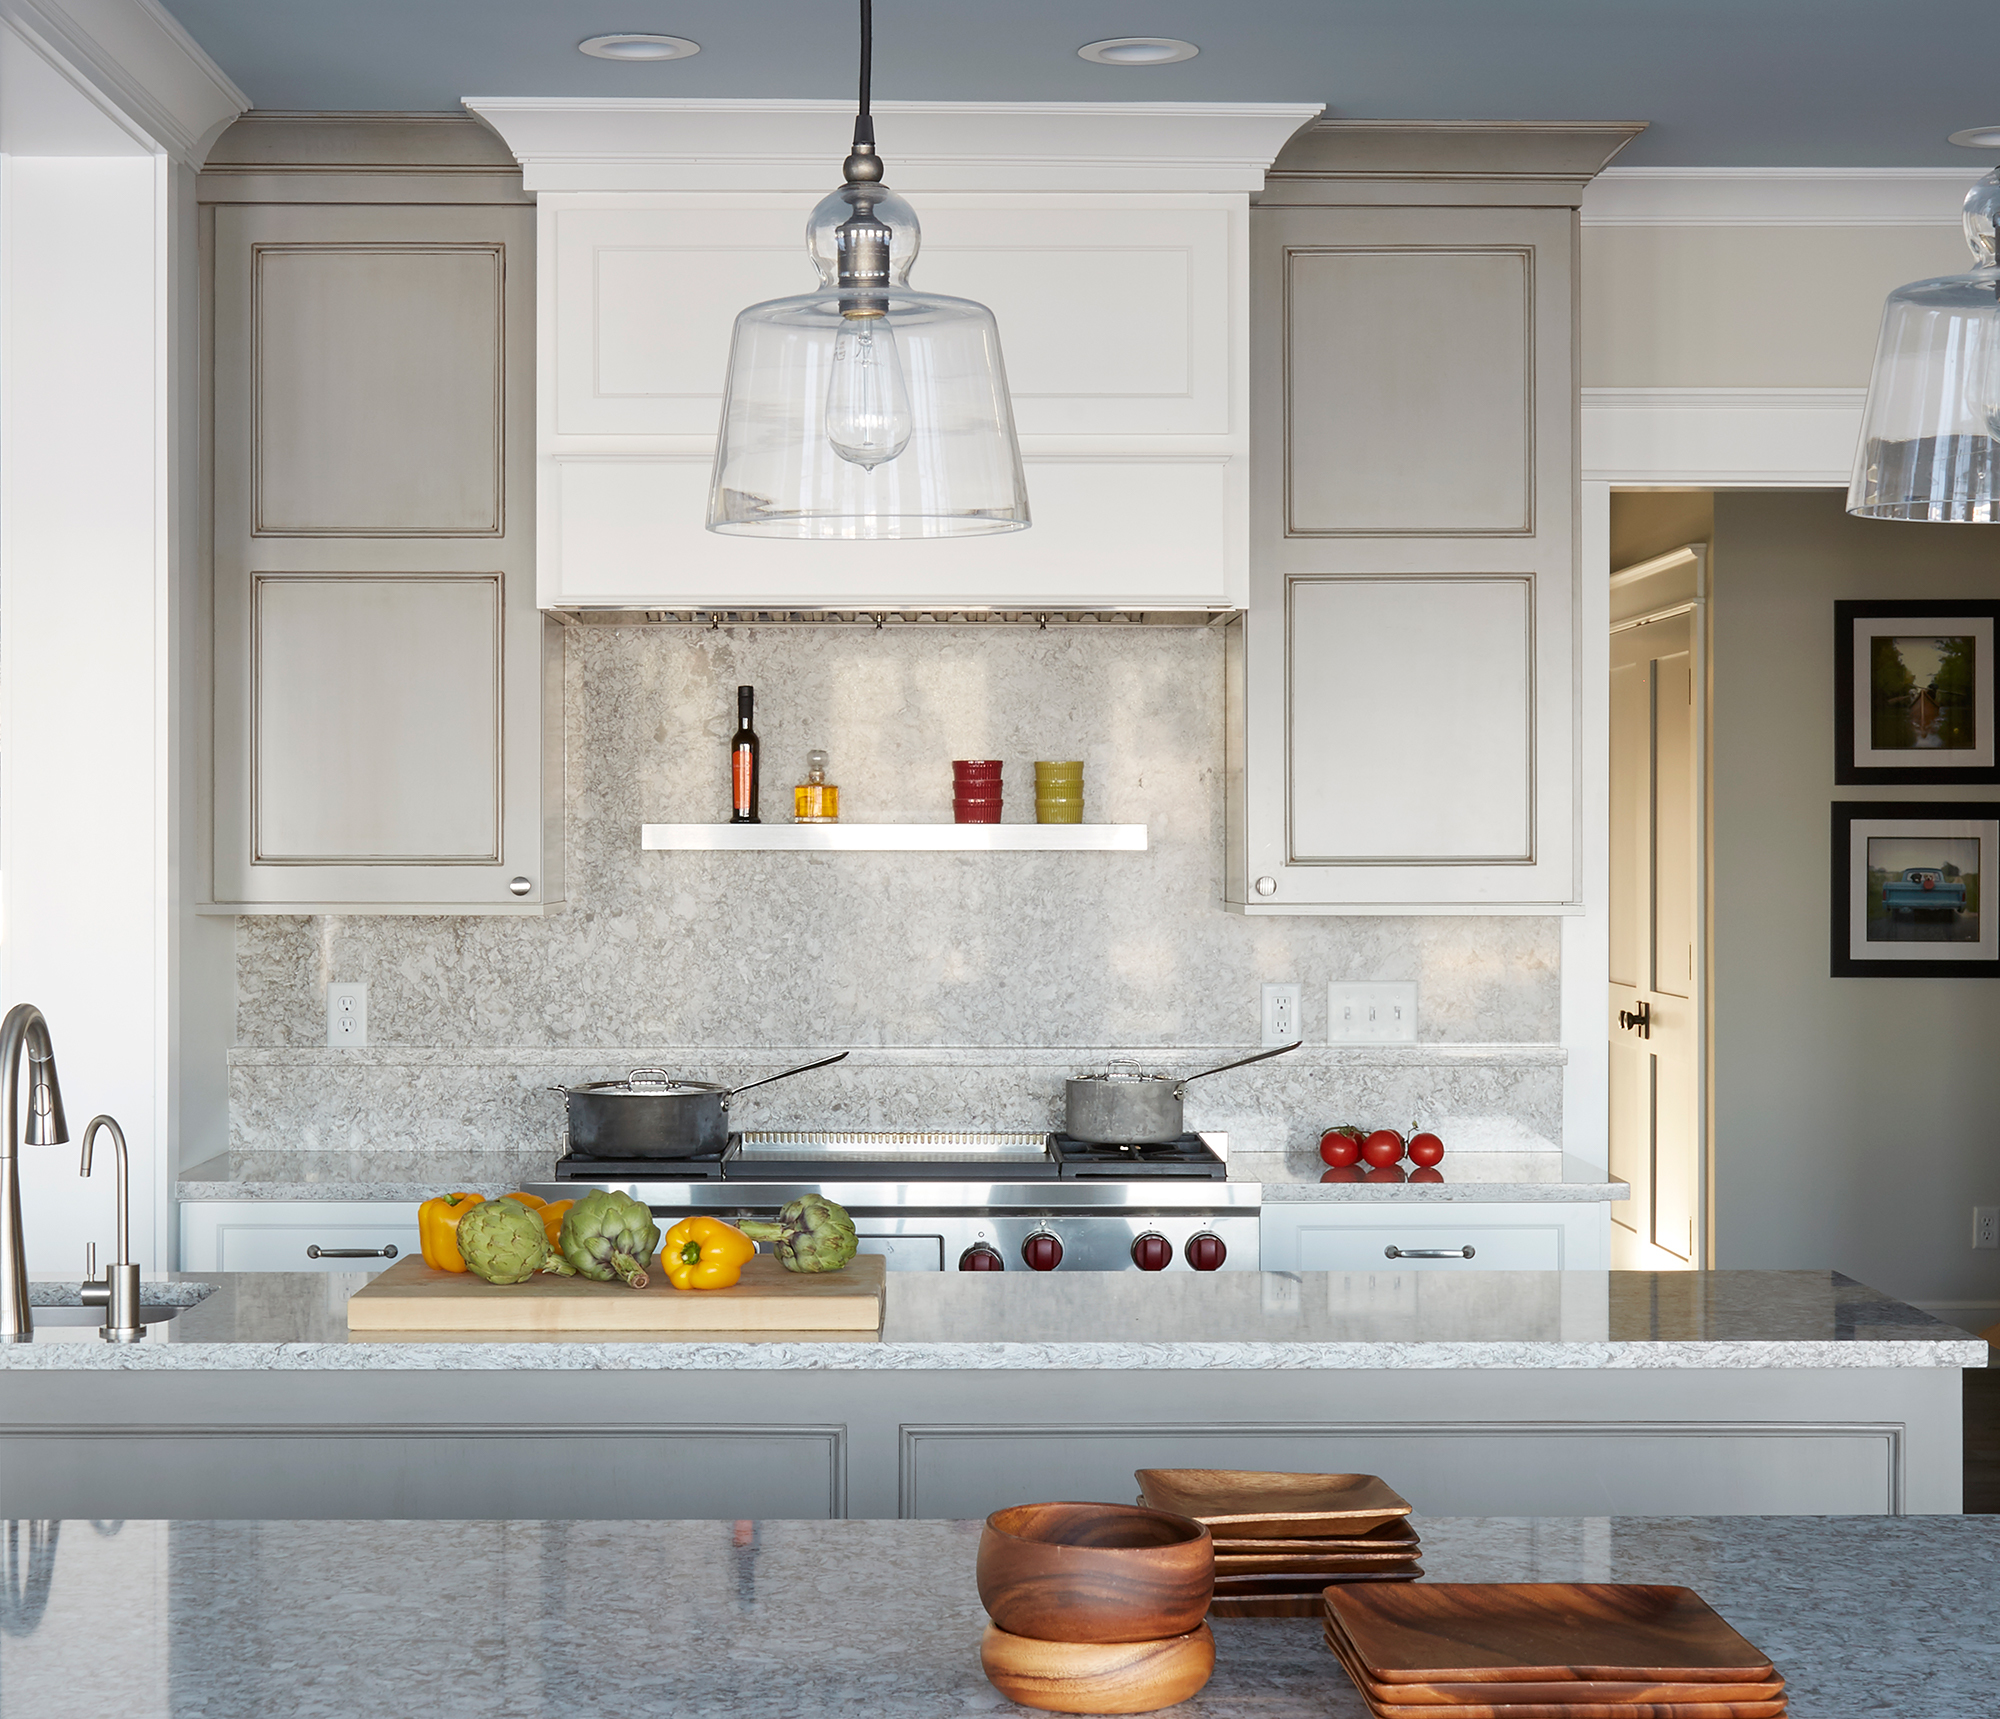 Swell Transitional Beauty Showplaceevo Showplace Cabinetry Home Interior And Landscaping Ologienasavecom